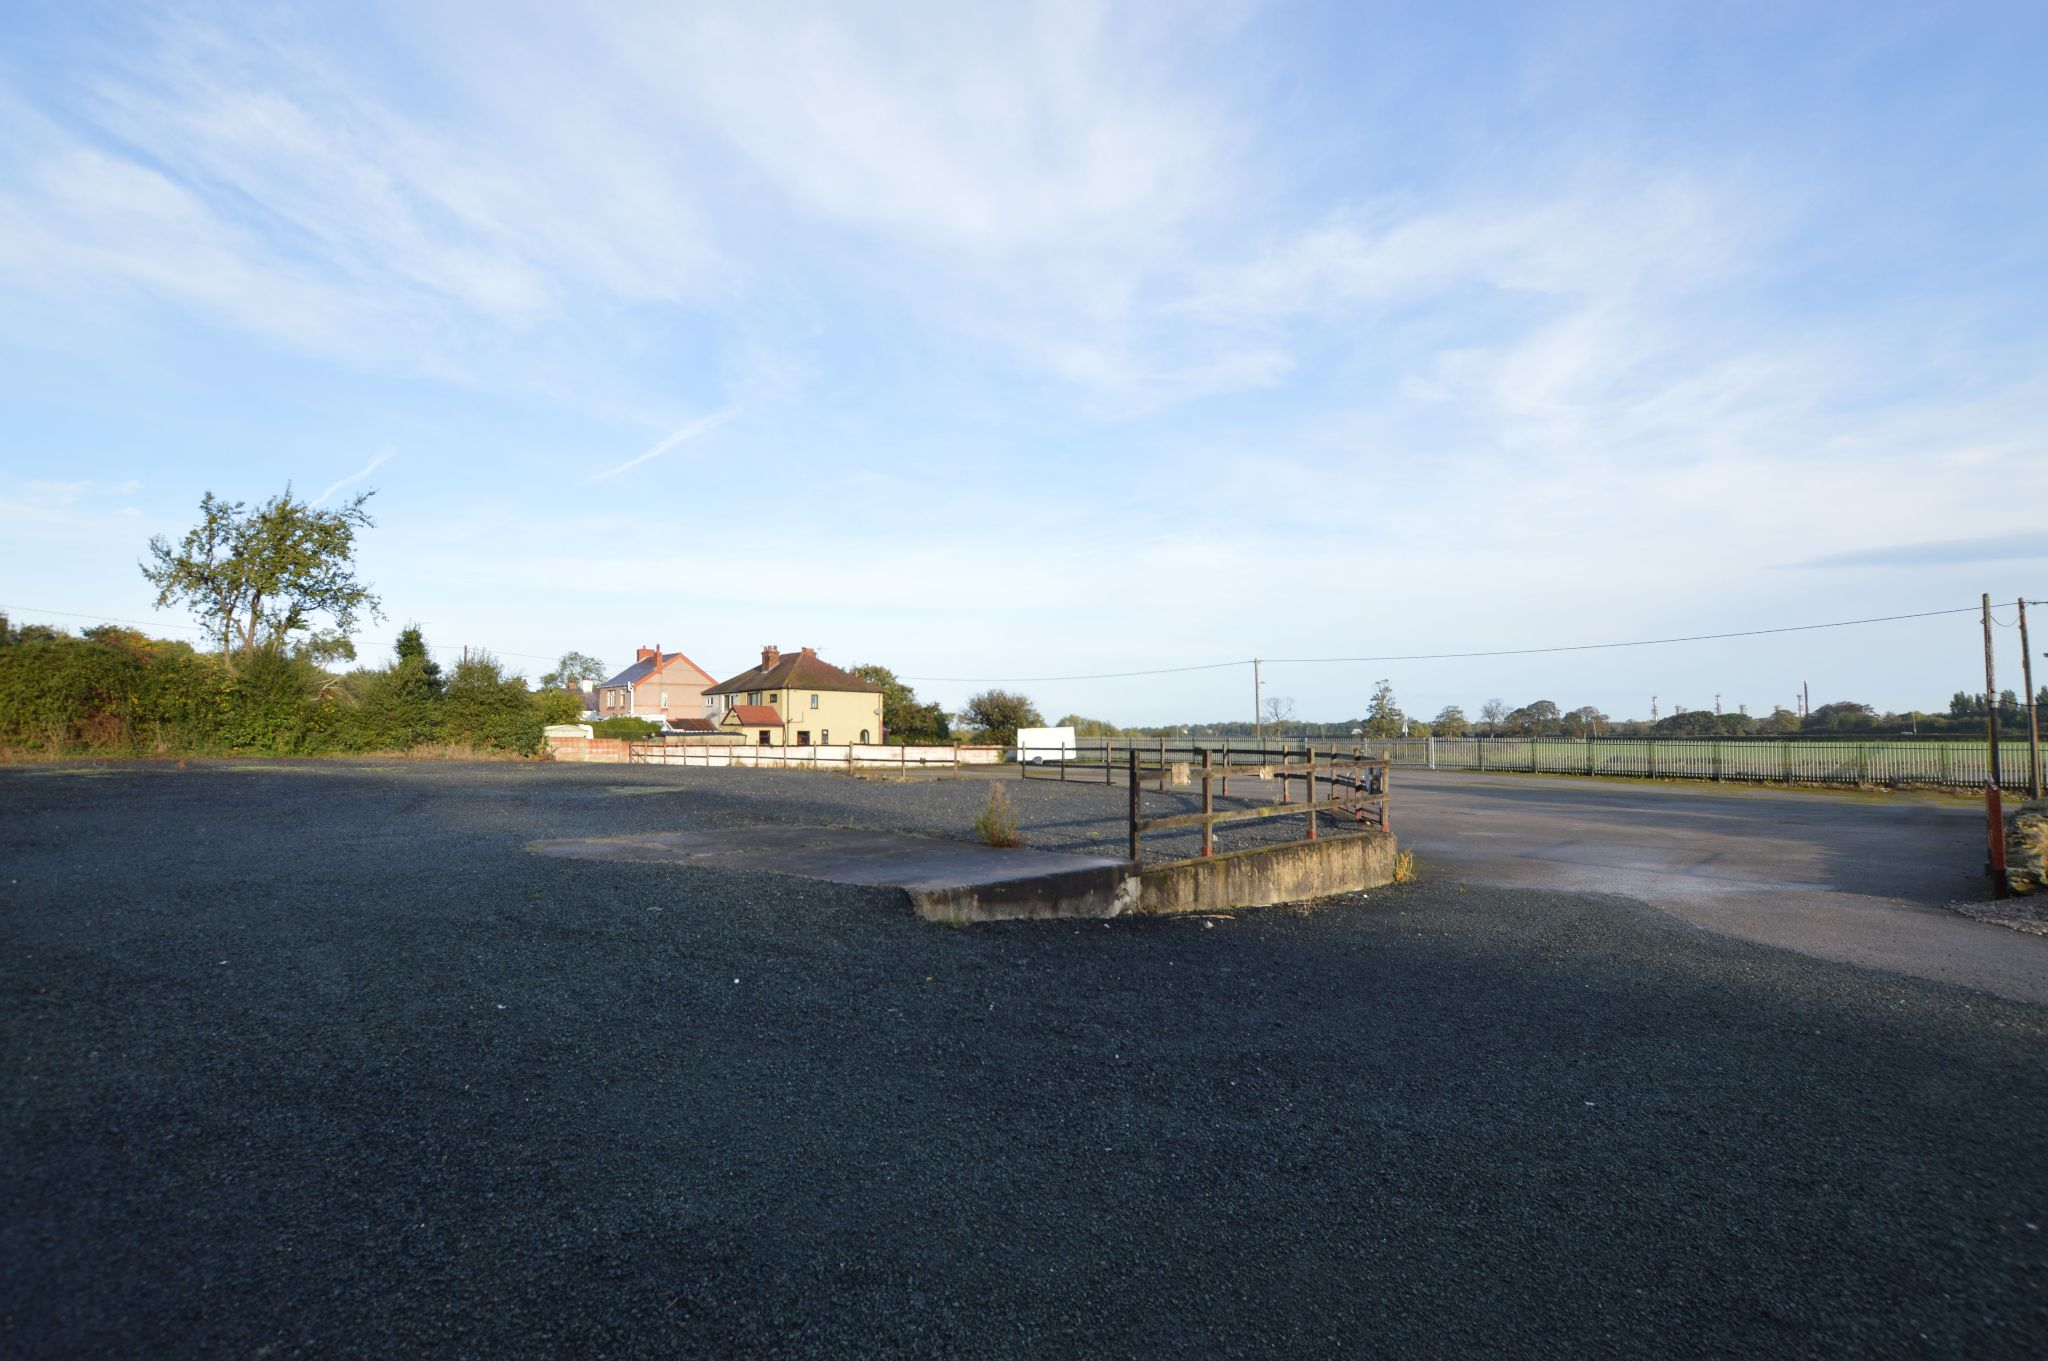 Land For Sale in Holywell - Land View 2